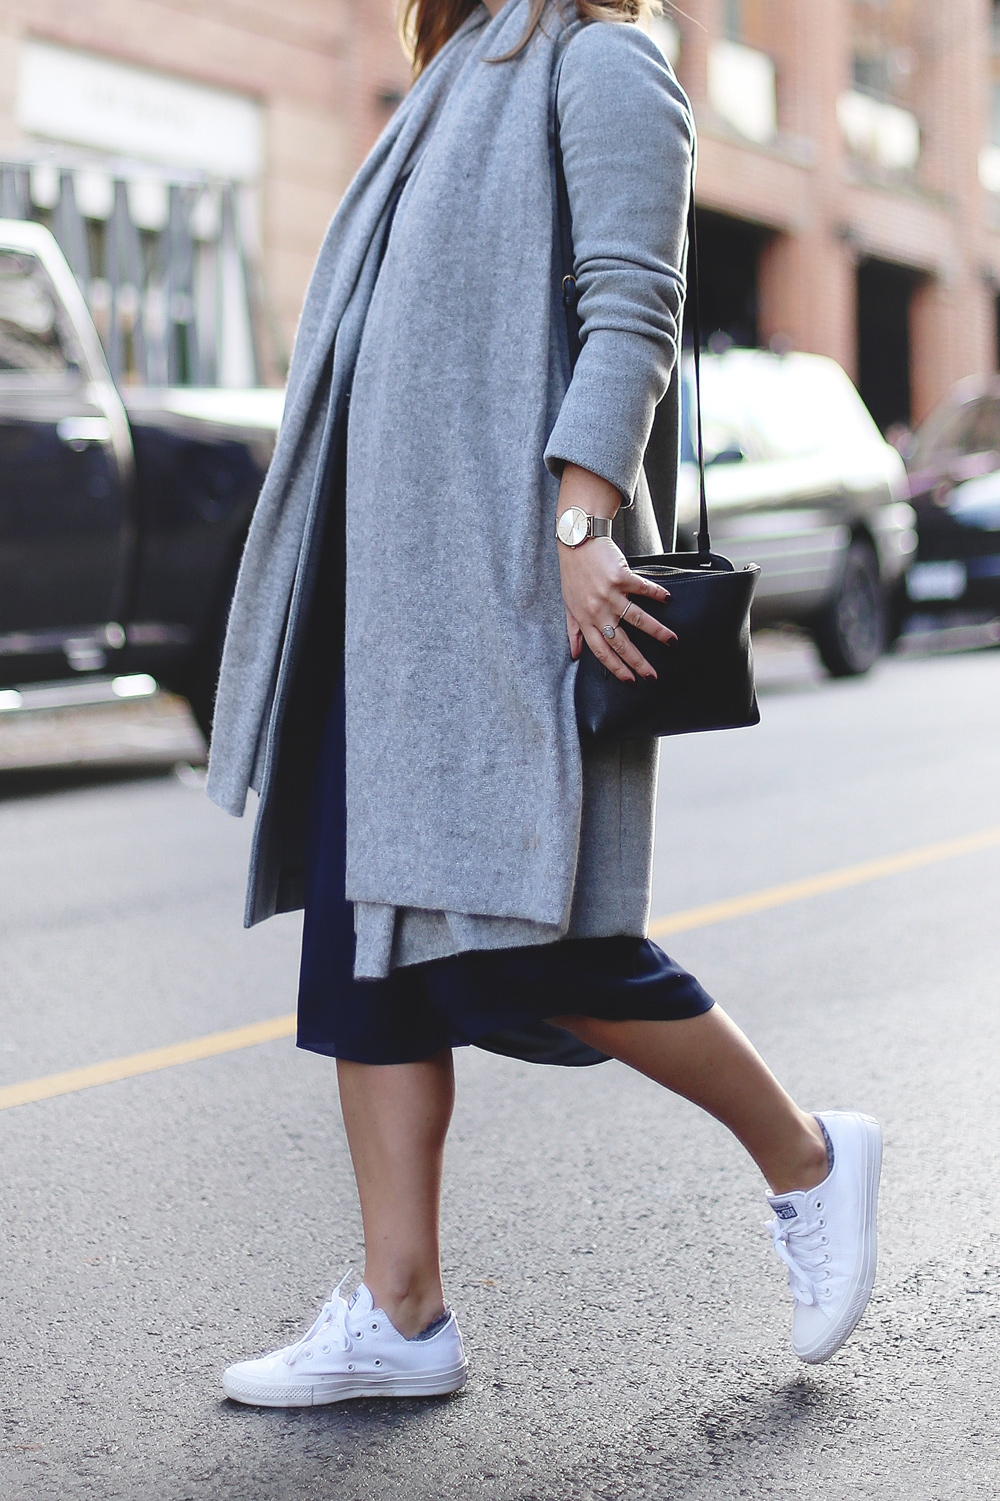 How to wear Converse sneakers with a dress in an Aritzia dress, White + Warren cashmere travel wrap, Converse white sneakers, Celine sunglasses styled by To Vogue or Bust